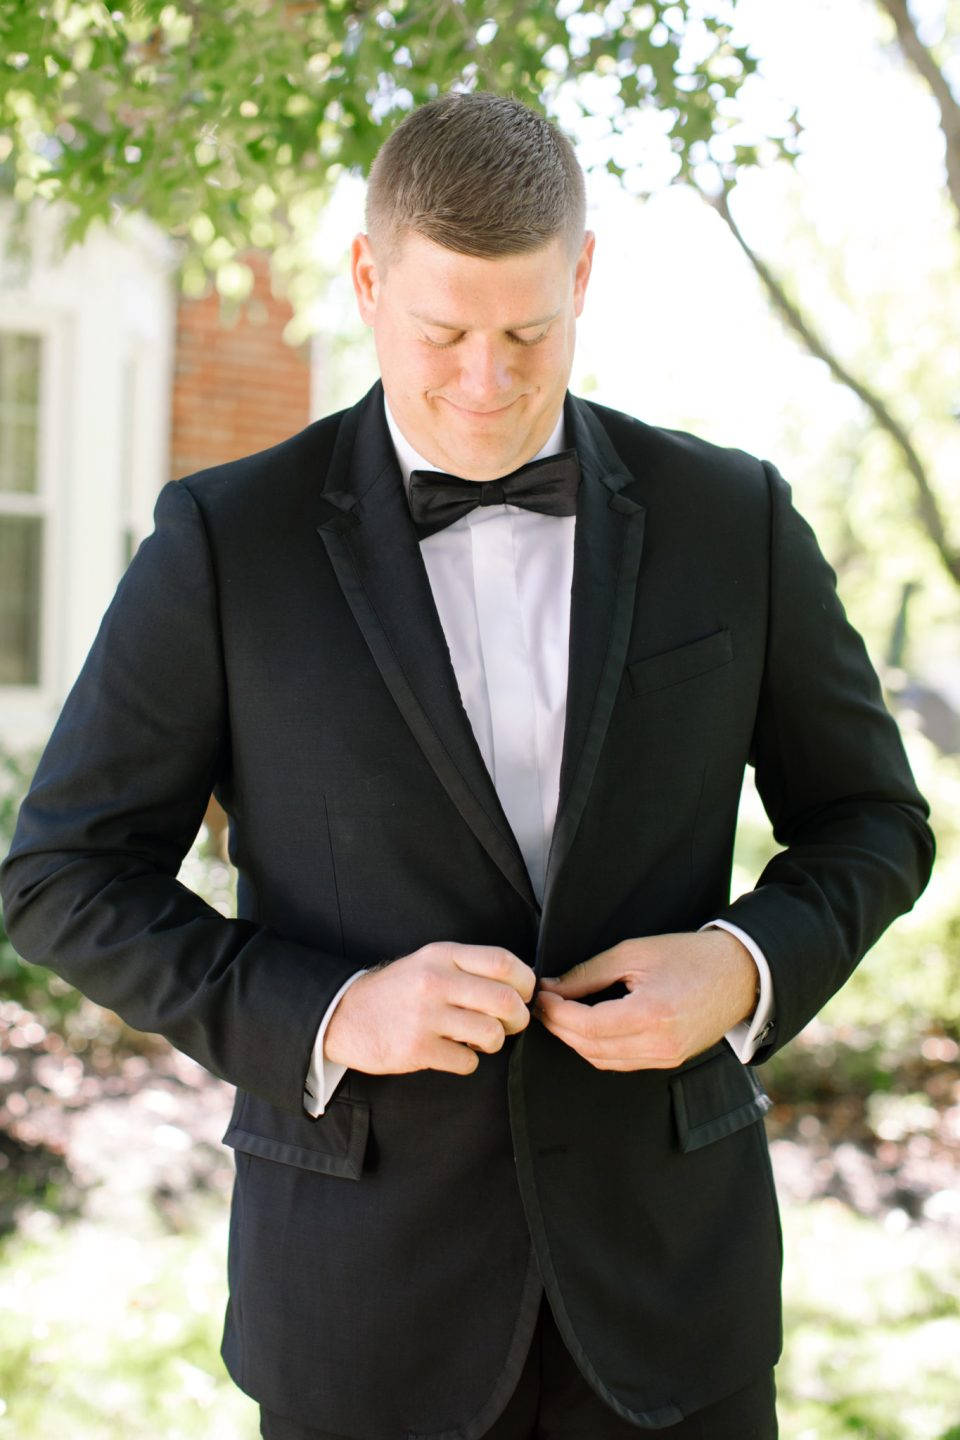 Ashley Mac Photographs captures groom getting ready